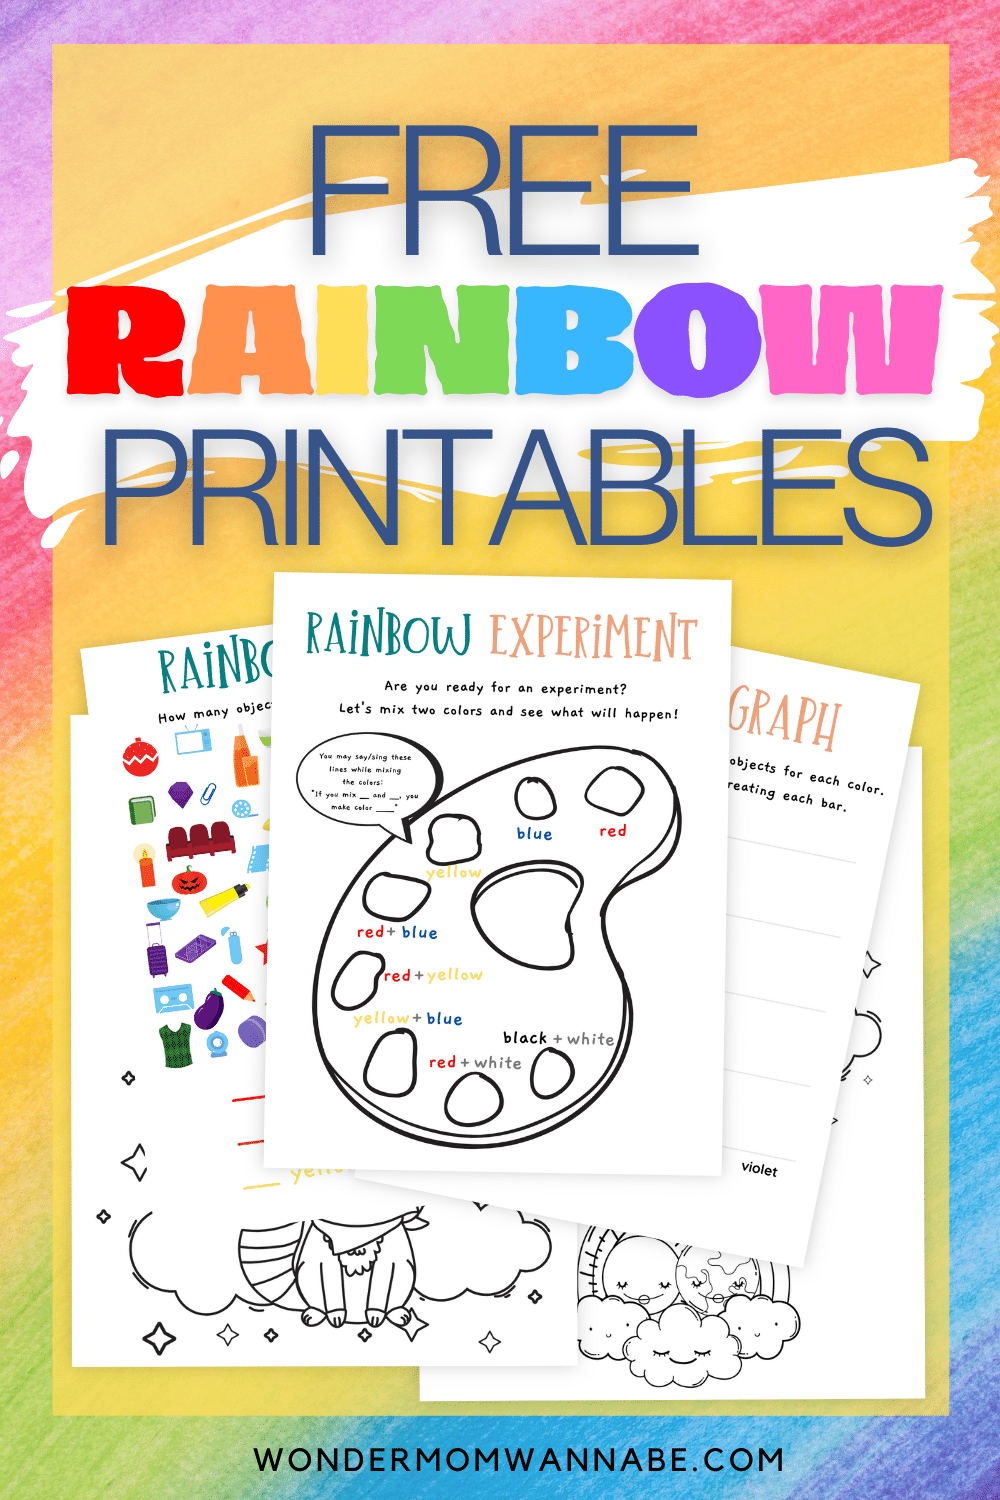 Use these free printable rainbow worksheets and coloring pages to help your child learn their colors and have fun at the same time. #freeprintable #rainbow #coloringpages #worksheets #forkids via @wondermomwannab